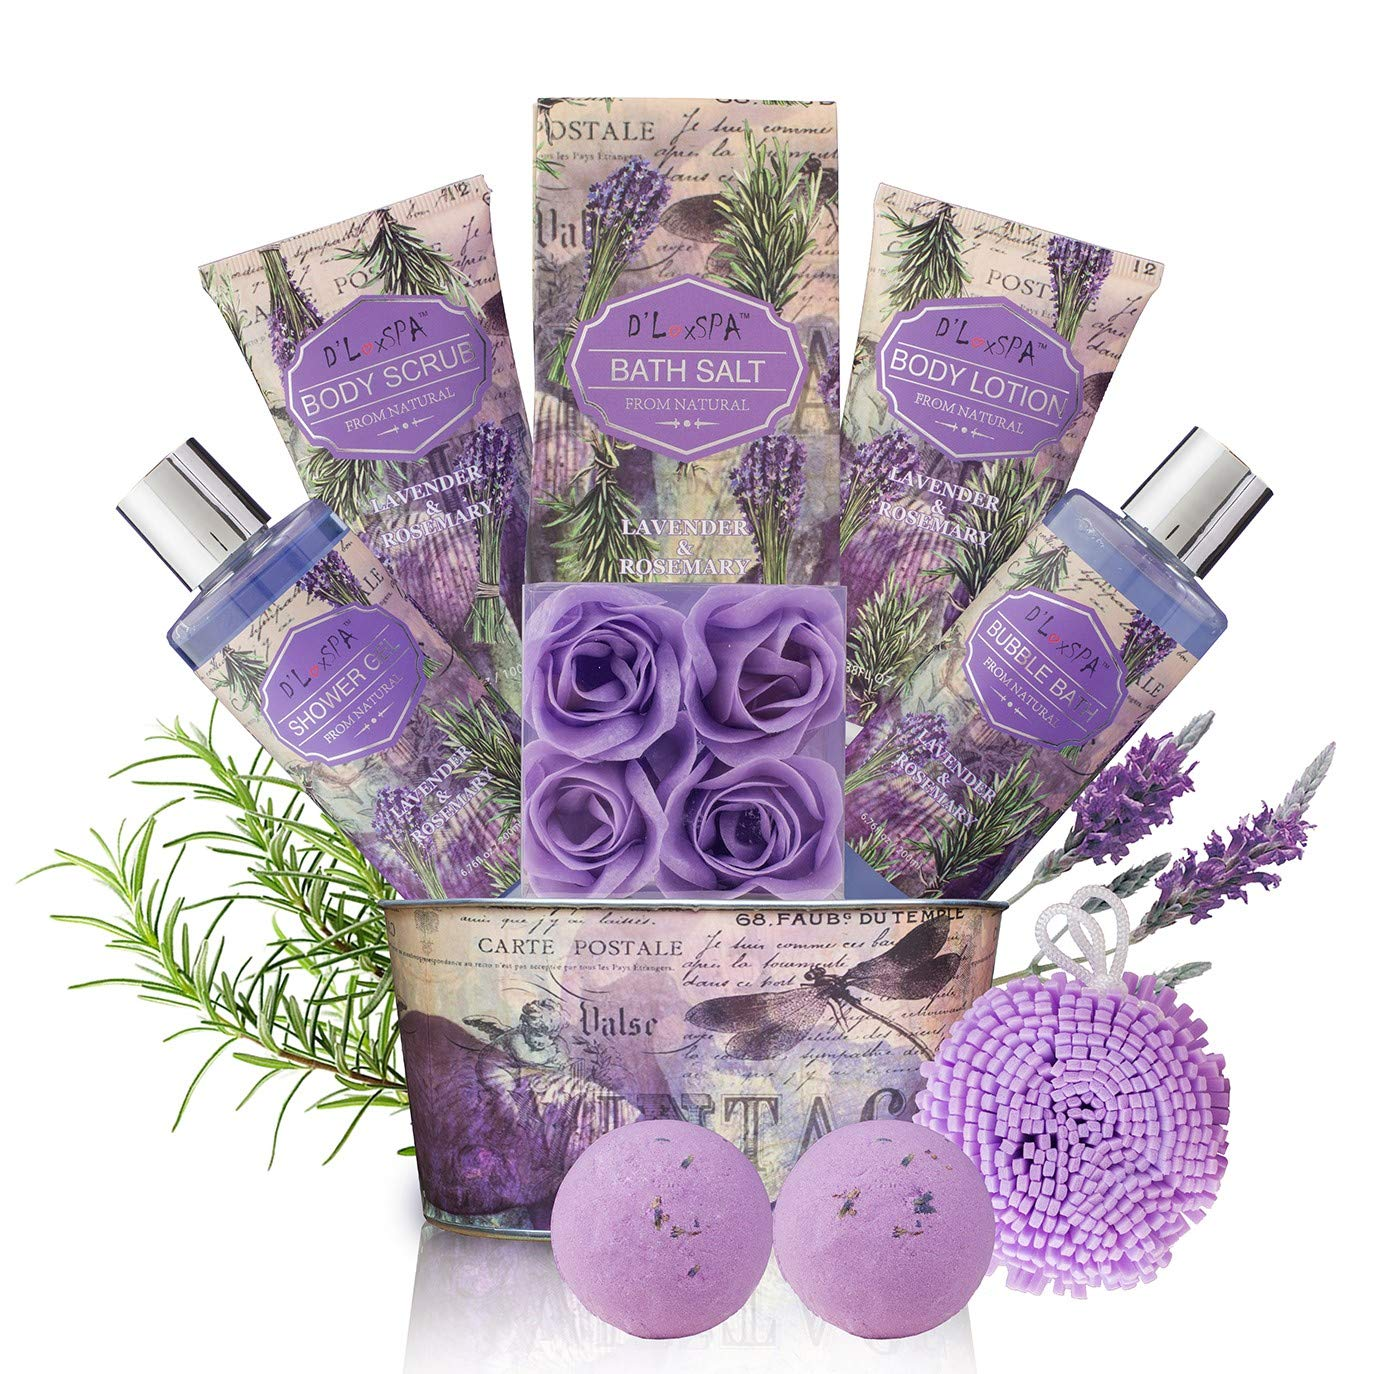 Amazon Com Relaxing Bath Gift Set For Women Lavender And Rosemary Aromatherapy Basket At Home Spa Kit Mothers Day Birthday Holiday Gift Ideas For Mom 13 Pack With Bubble Bath